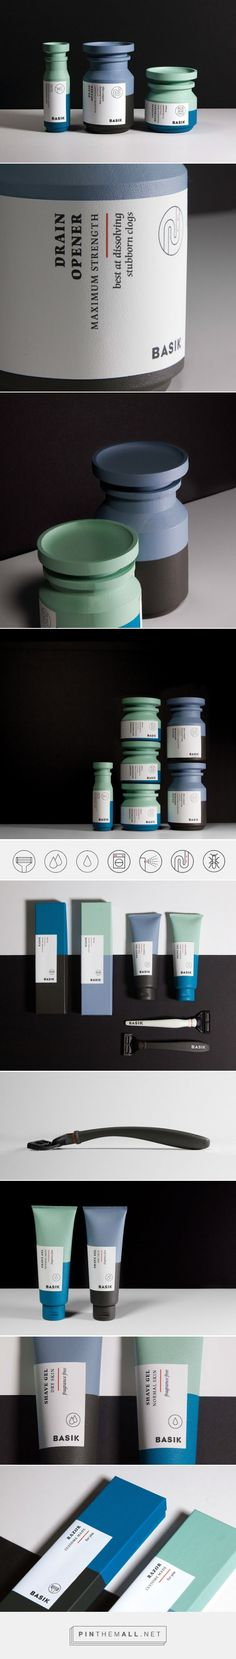 Basik on Packaging of the World - Creative Package Design Gallery. - a grouped images picture Bottle Packaging, Cosmetic Packaging, Beauty Packaging, Brand Packaging, Skincare Packaging, Design Packaging, Coffee Packaging, Product Packaging, Food Packaging